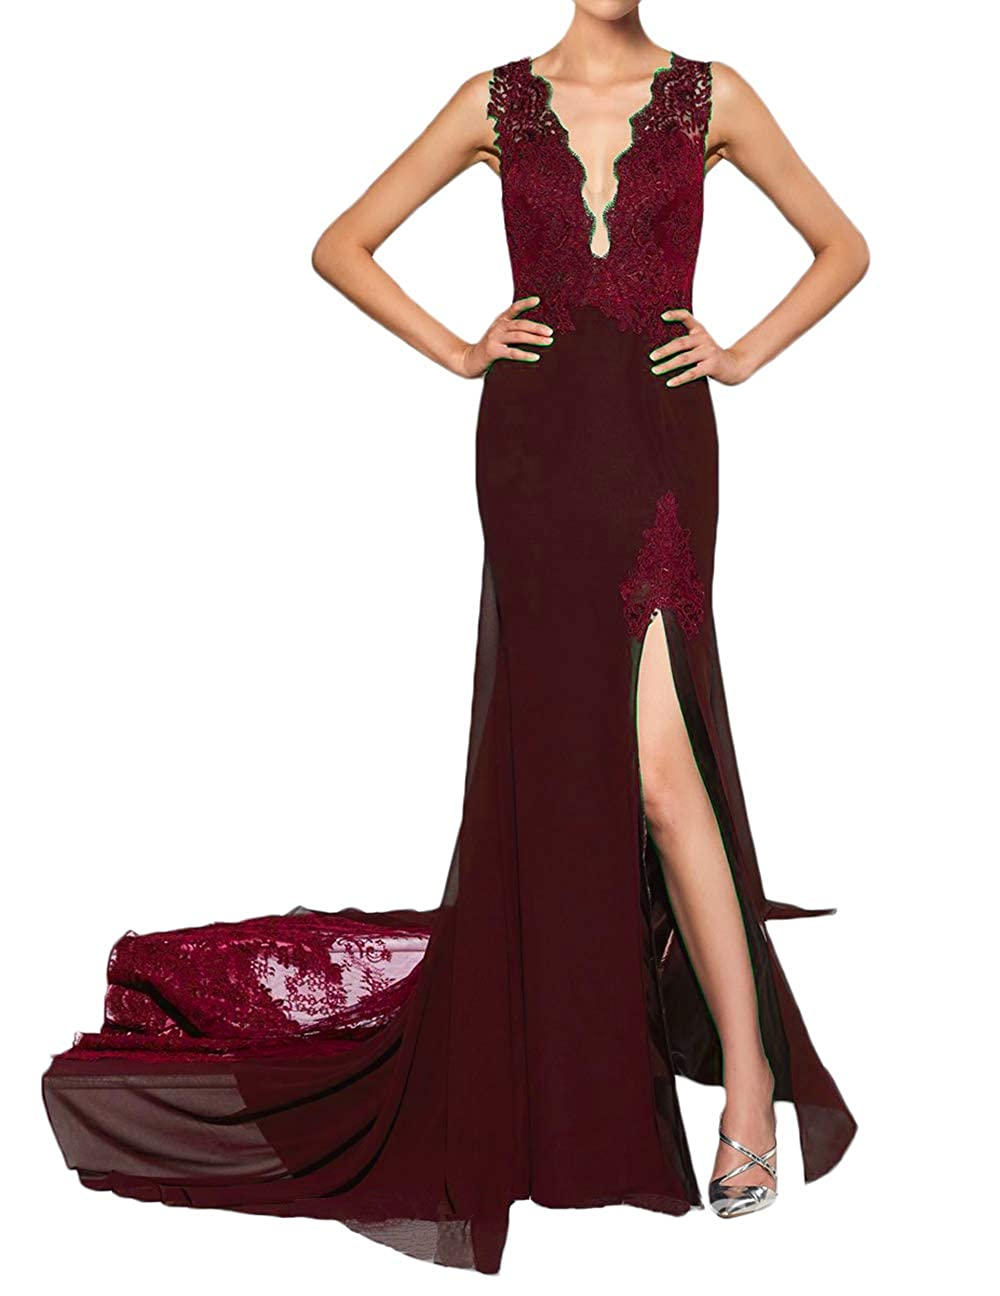 Dark Burgundy alilith.Z Sexy Plunging V Neck Prom Dresses 2019 Mermaid Appliques Lace Long Formal Evening Dresses for Women with Slit